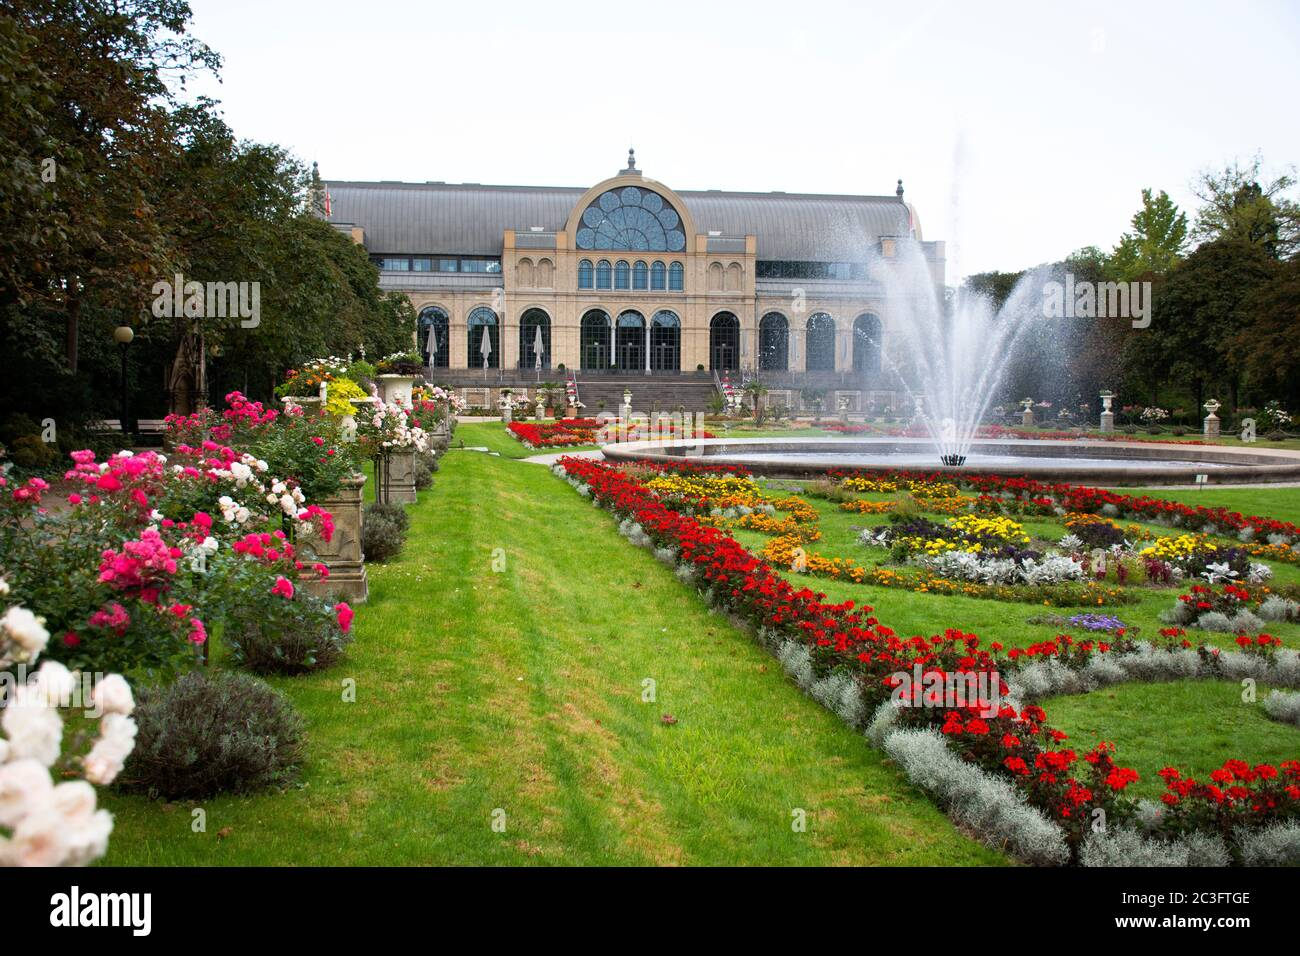 Cologne Zoological Garden High Resolution Stock Photography And Images Alamy